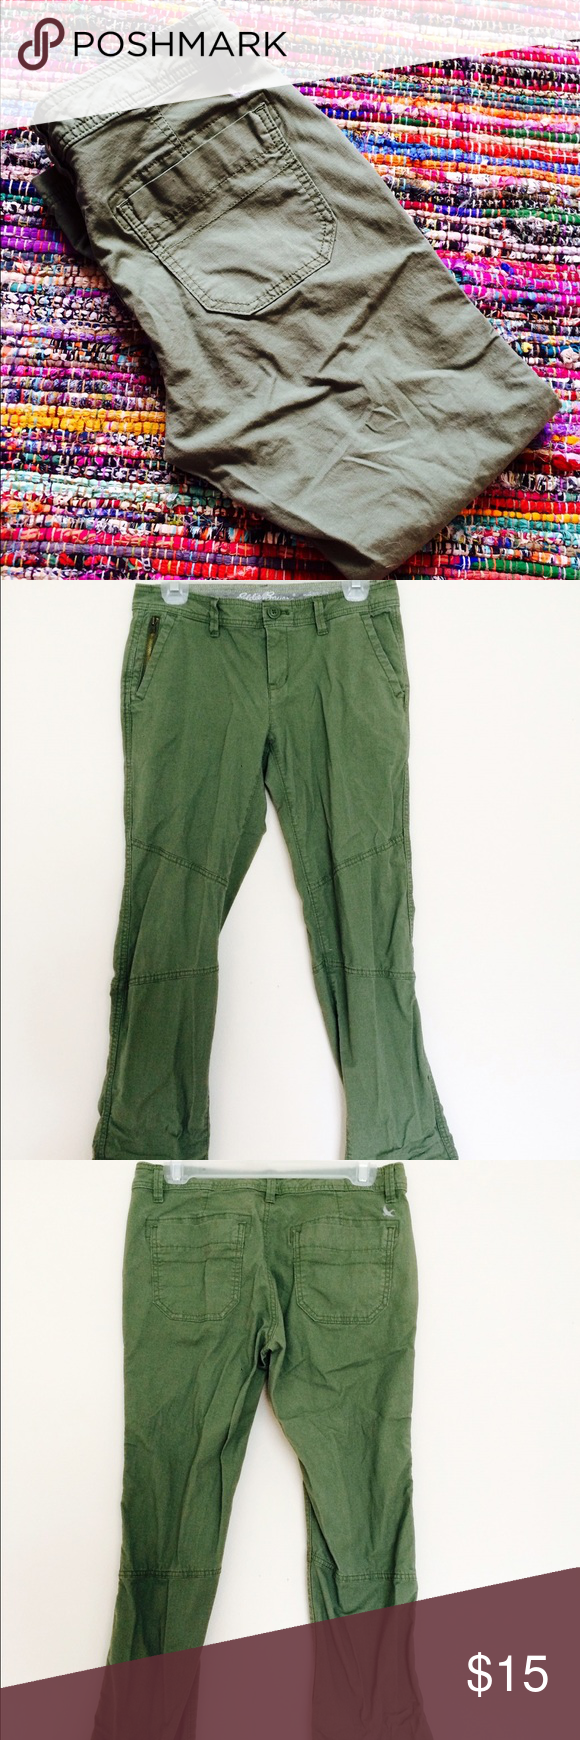 Army Green Pants Army green Eddie Bauer pants. Super great pair of pants but a little to big on me . Worn once otherwise in fabulous condition.                  PLEASE CHECKOUT MY $10 SALE!!! (There are some excluded items such as these but if you bundle or offer I would be happy to obligate. Just no extremely low offers❗️) Eddie Bauer Pants Straight Leg